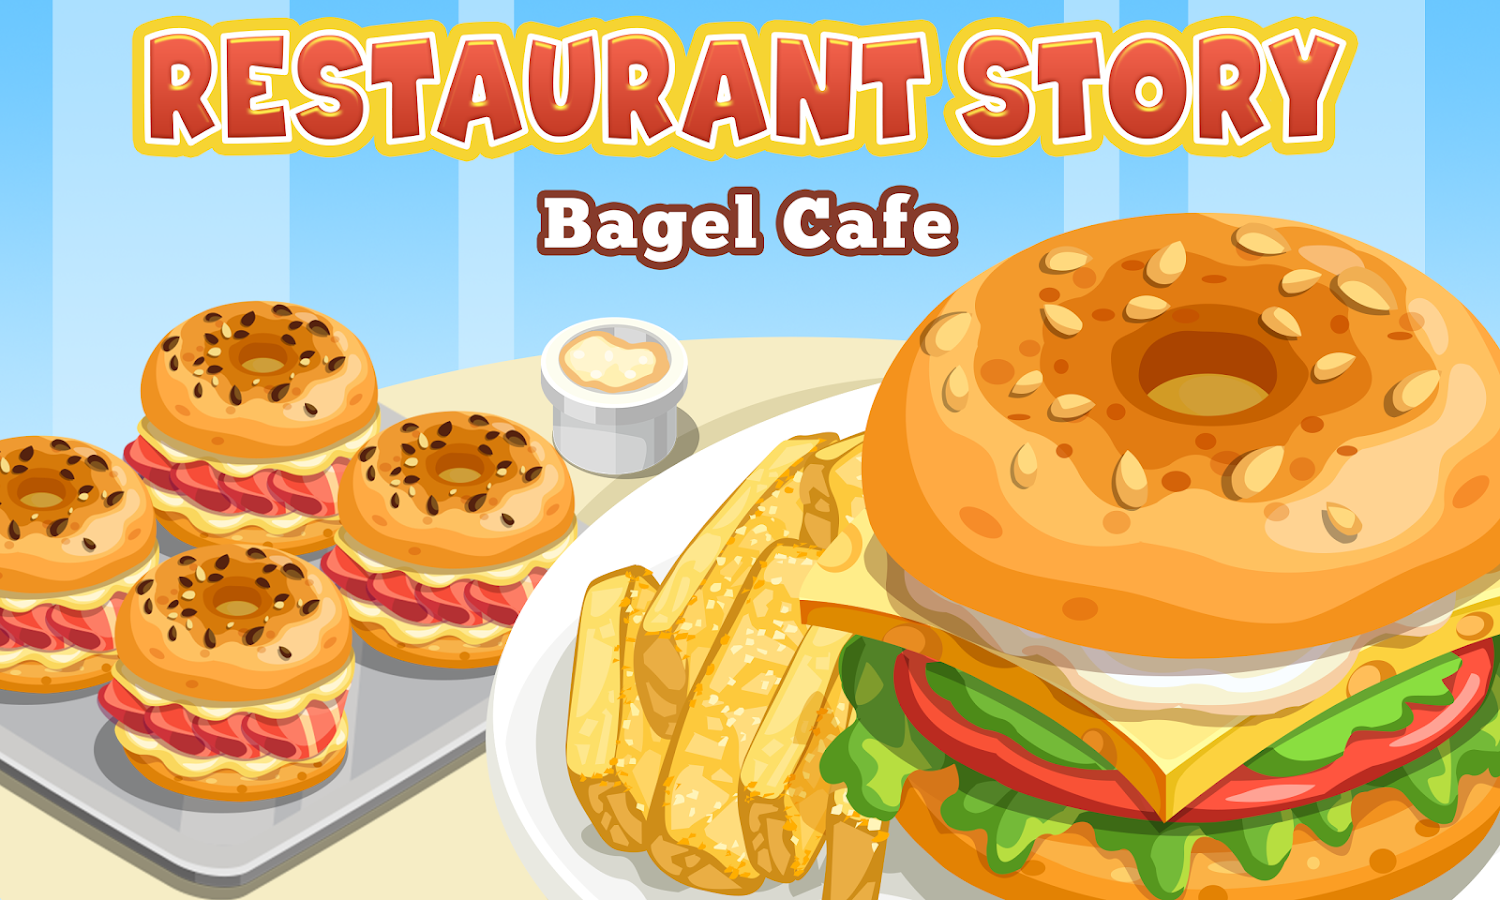 Home Design Game Storm8 Id Restaurant Story Bagel Cafe Android Apps On Google Play